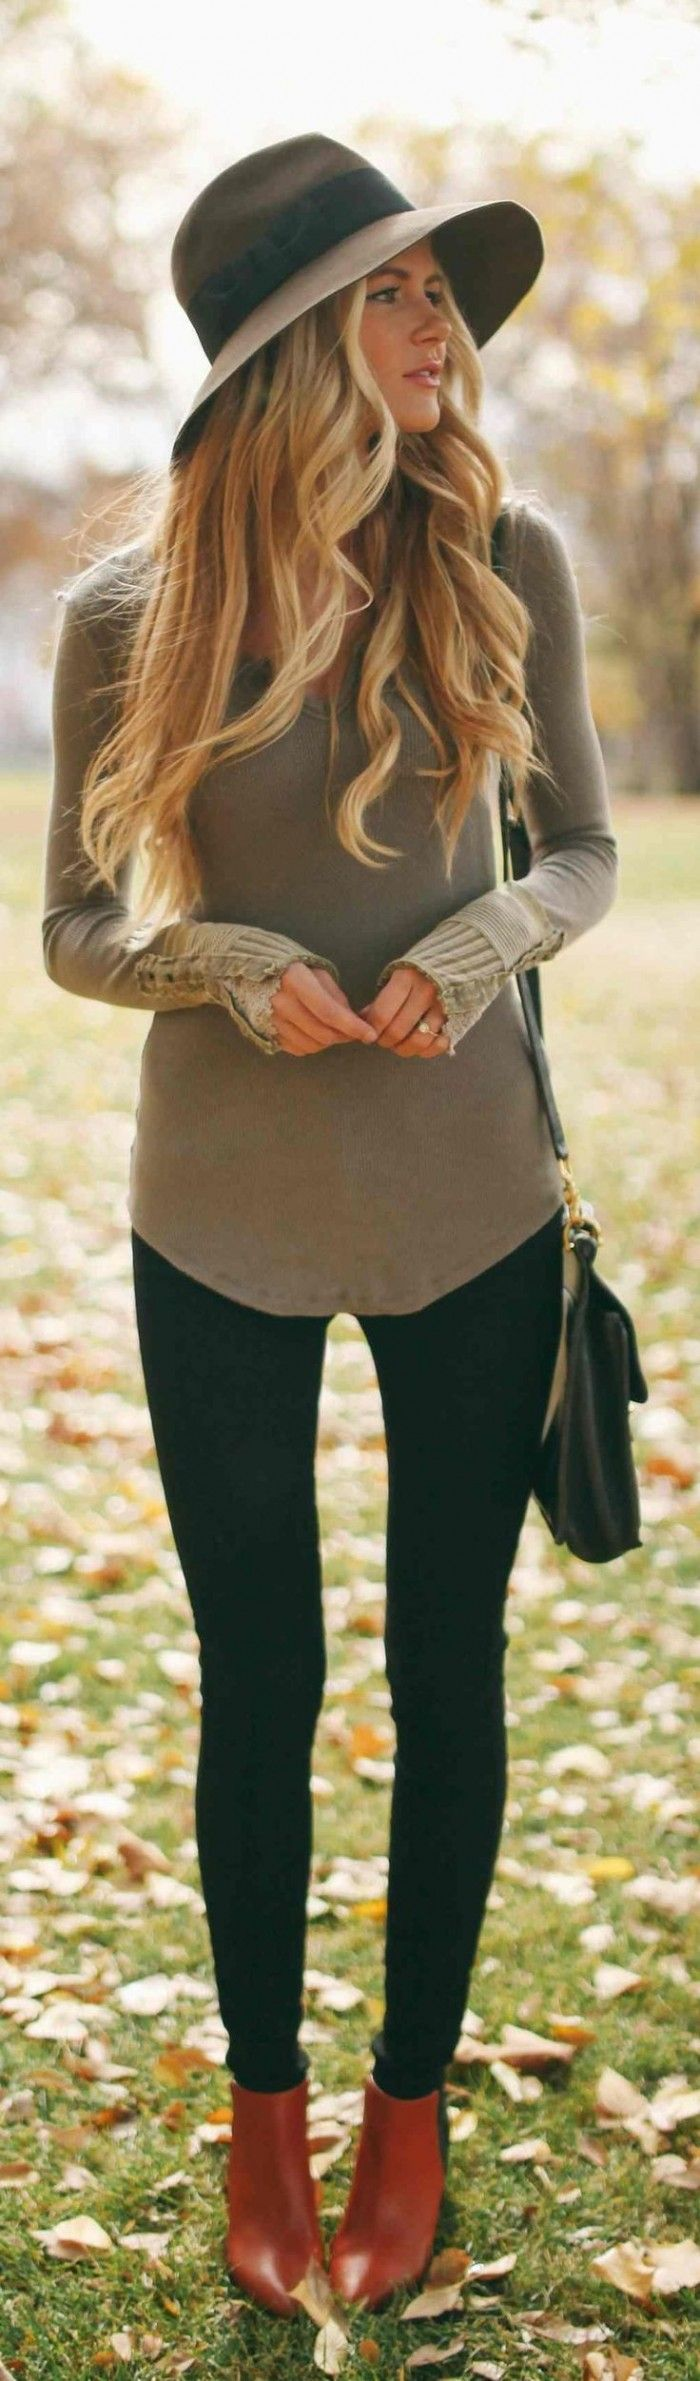 40 Stylish Fall Outfits For Women to try in 2015